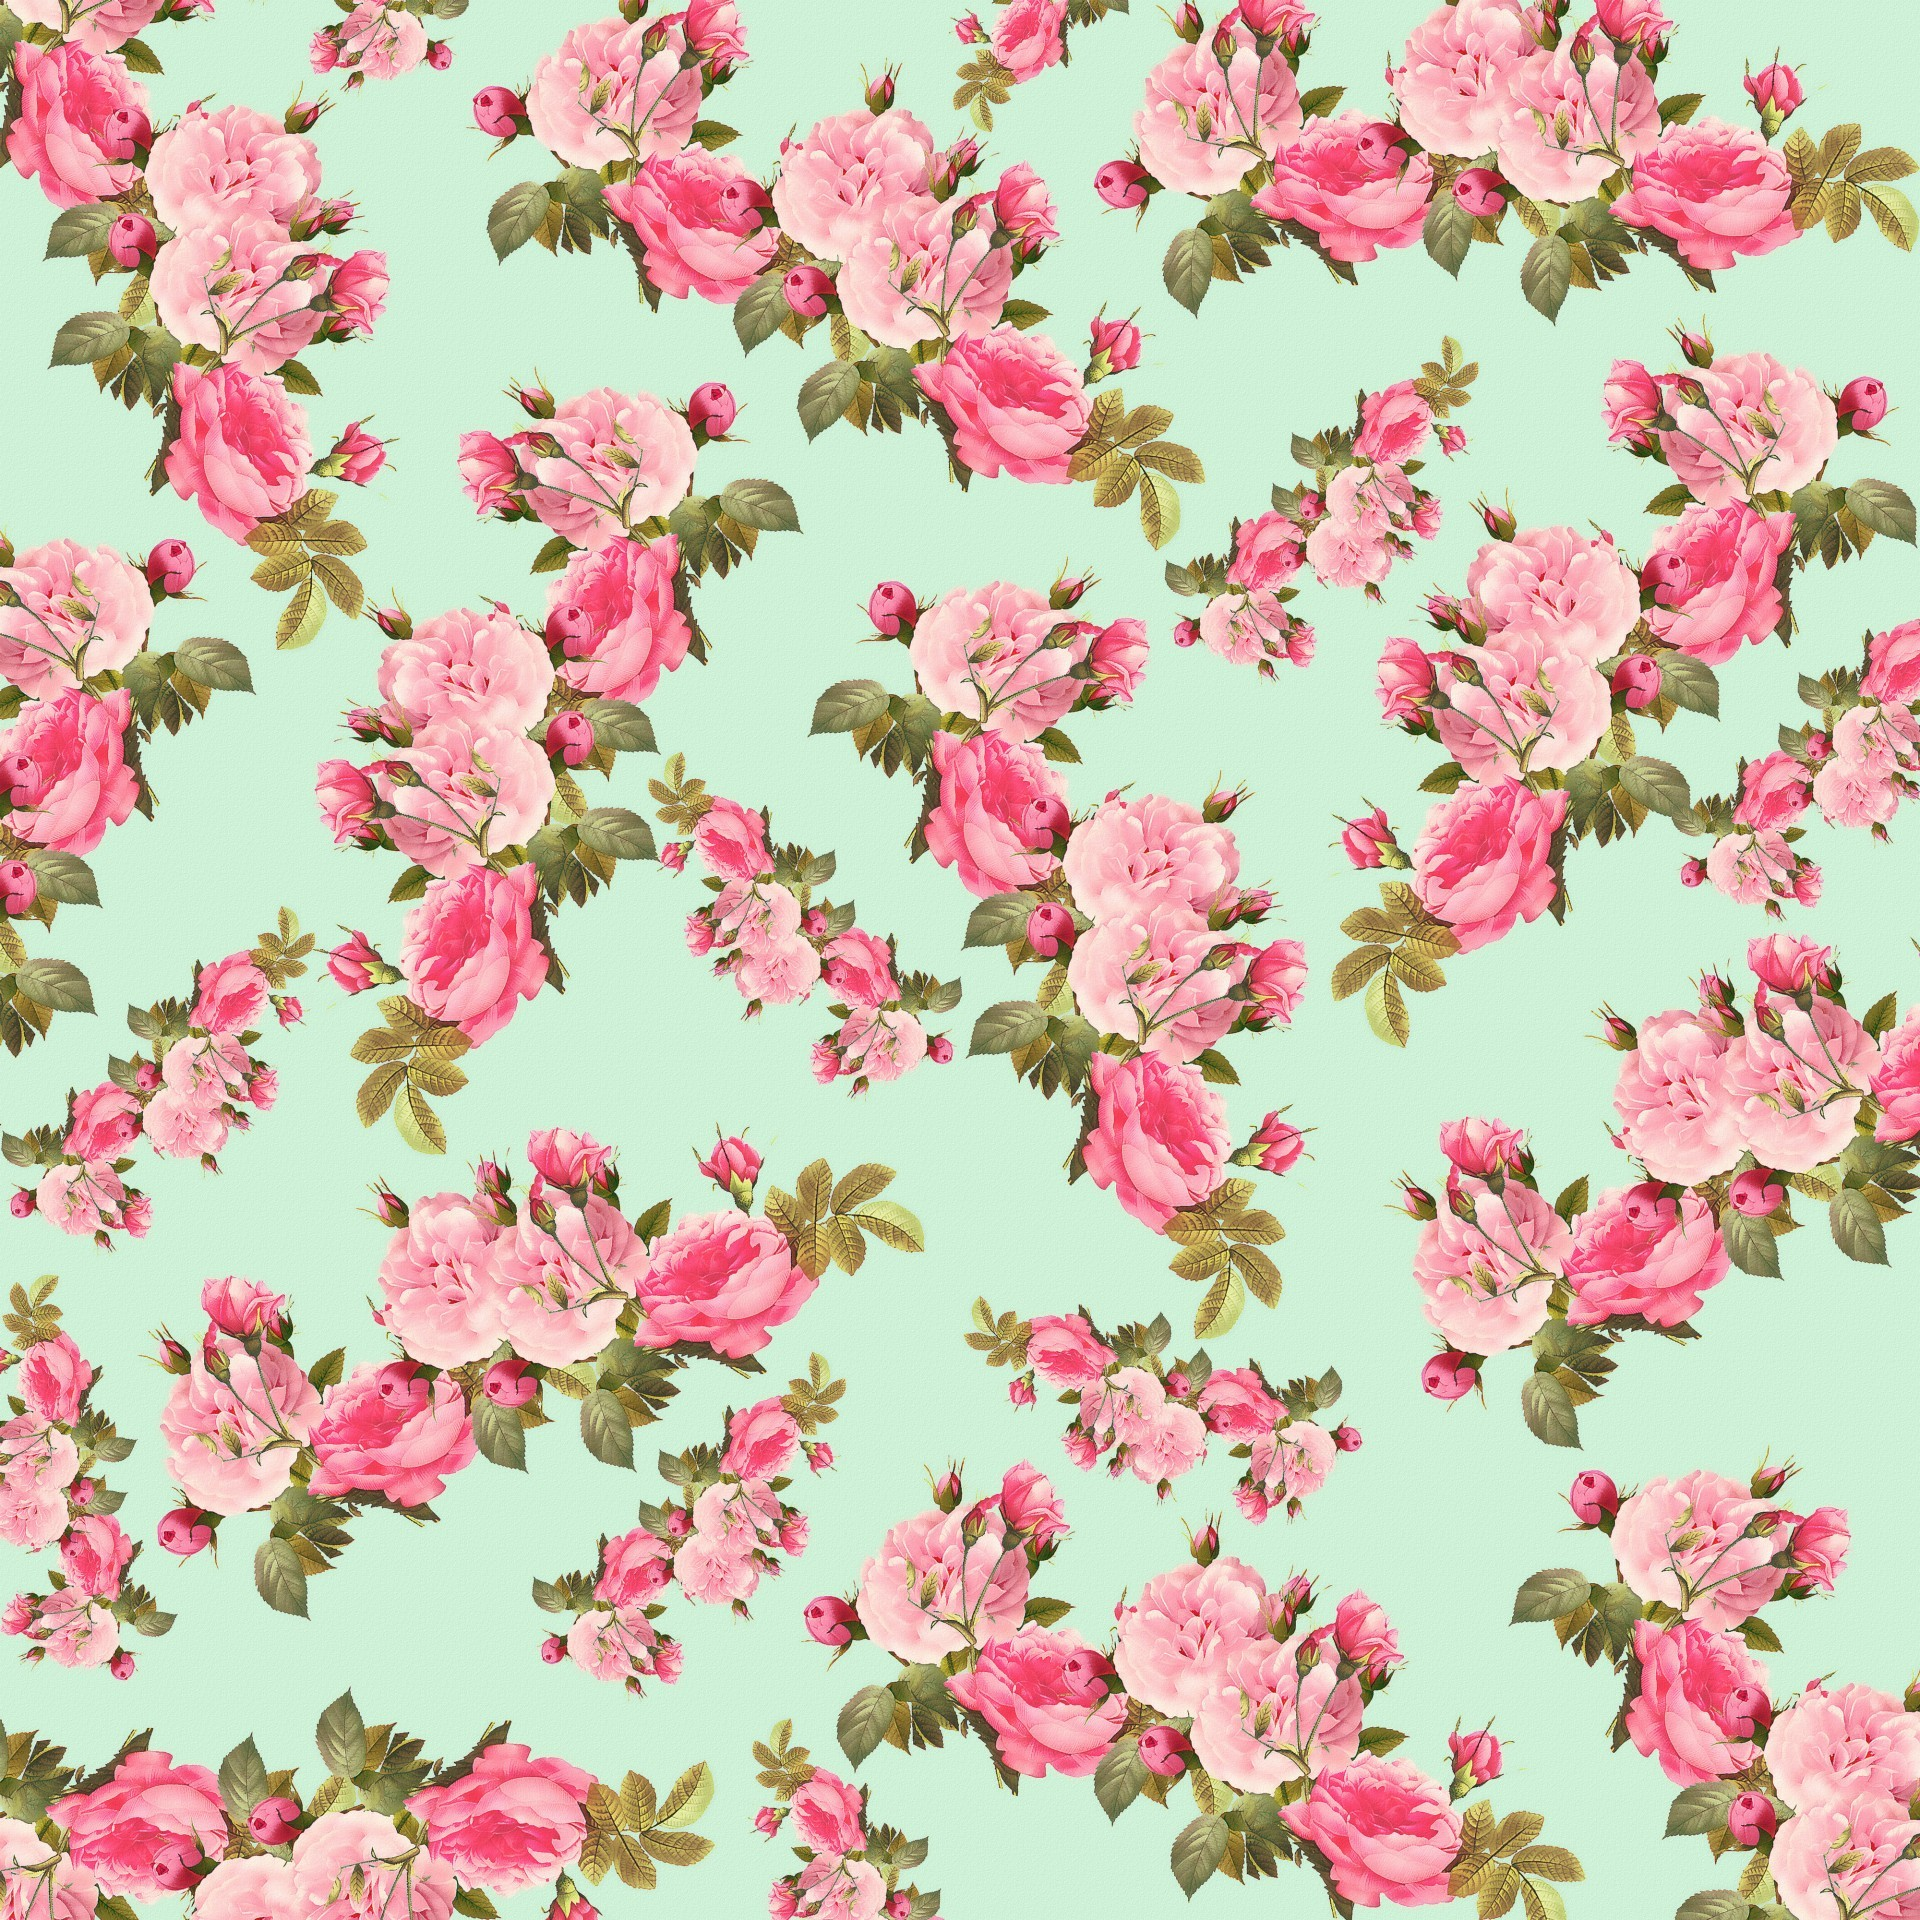 floral background ·① download free high resolution wallpapers for